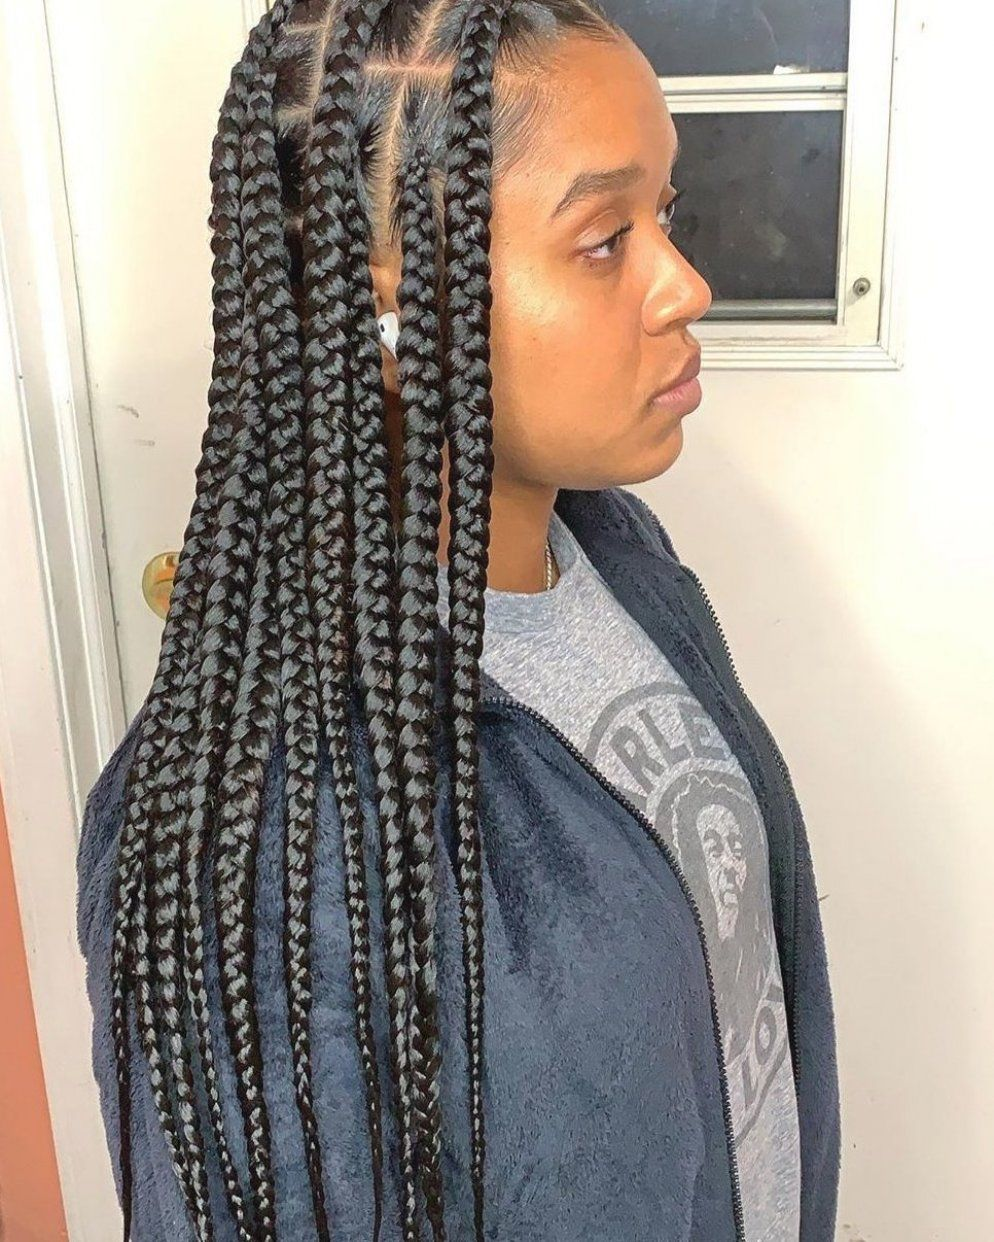 Hair Large Knotless Braids Large Knotless Box Braids Black Girl Braids Goddess Braids Bra Box Braids Medium Length Braids With Curls Thick Hair Styles Black beauty bombshells is a participant in the amazon services llc associates program. hair large knotless braids large